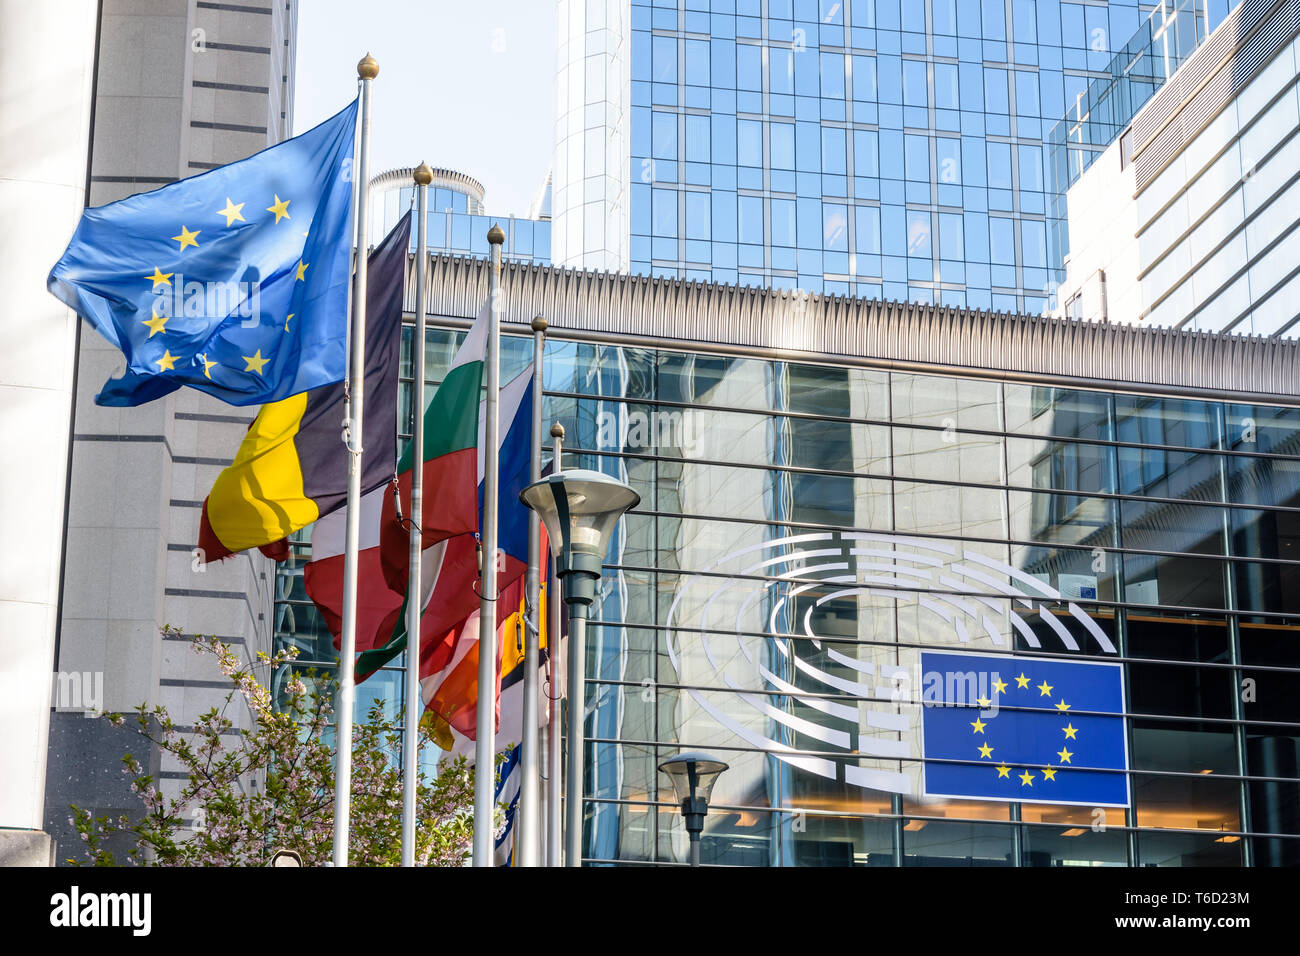 The Konstantinos Karamanlis bridge in the Espace Leopold with flags of the members of the European Union blowing in the wind in Brussels, Belgium. - Stock Image